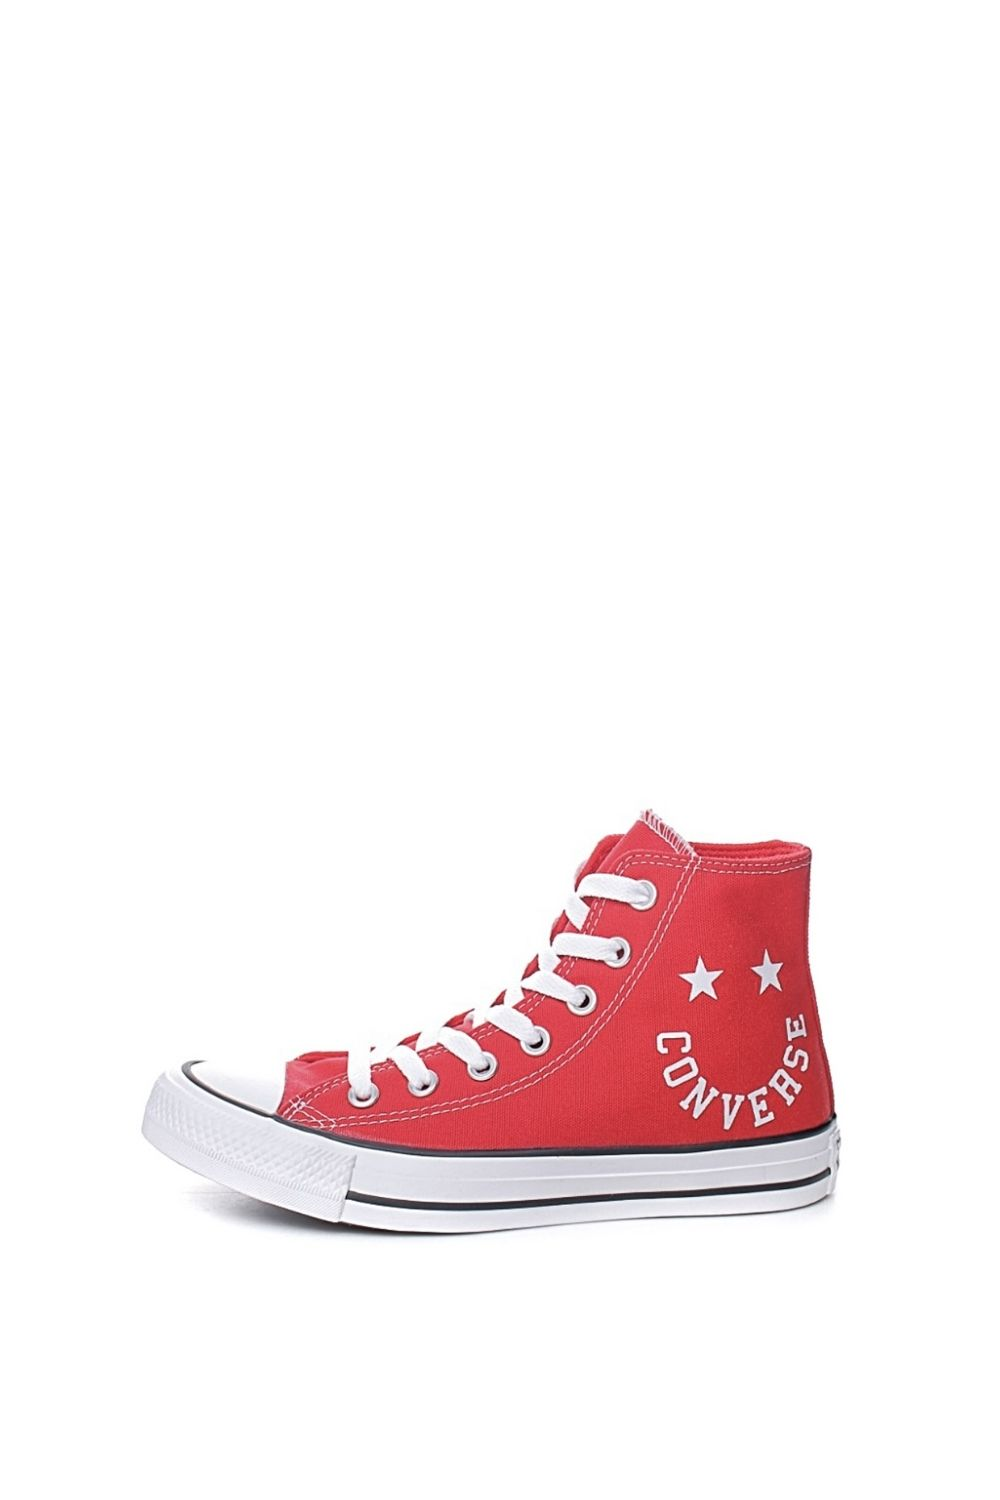 CONVERSE – Unisex ψηλά sneakers CONVERSE CHUCK TAYLOR ALL STAR SMILE κόκκινα